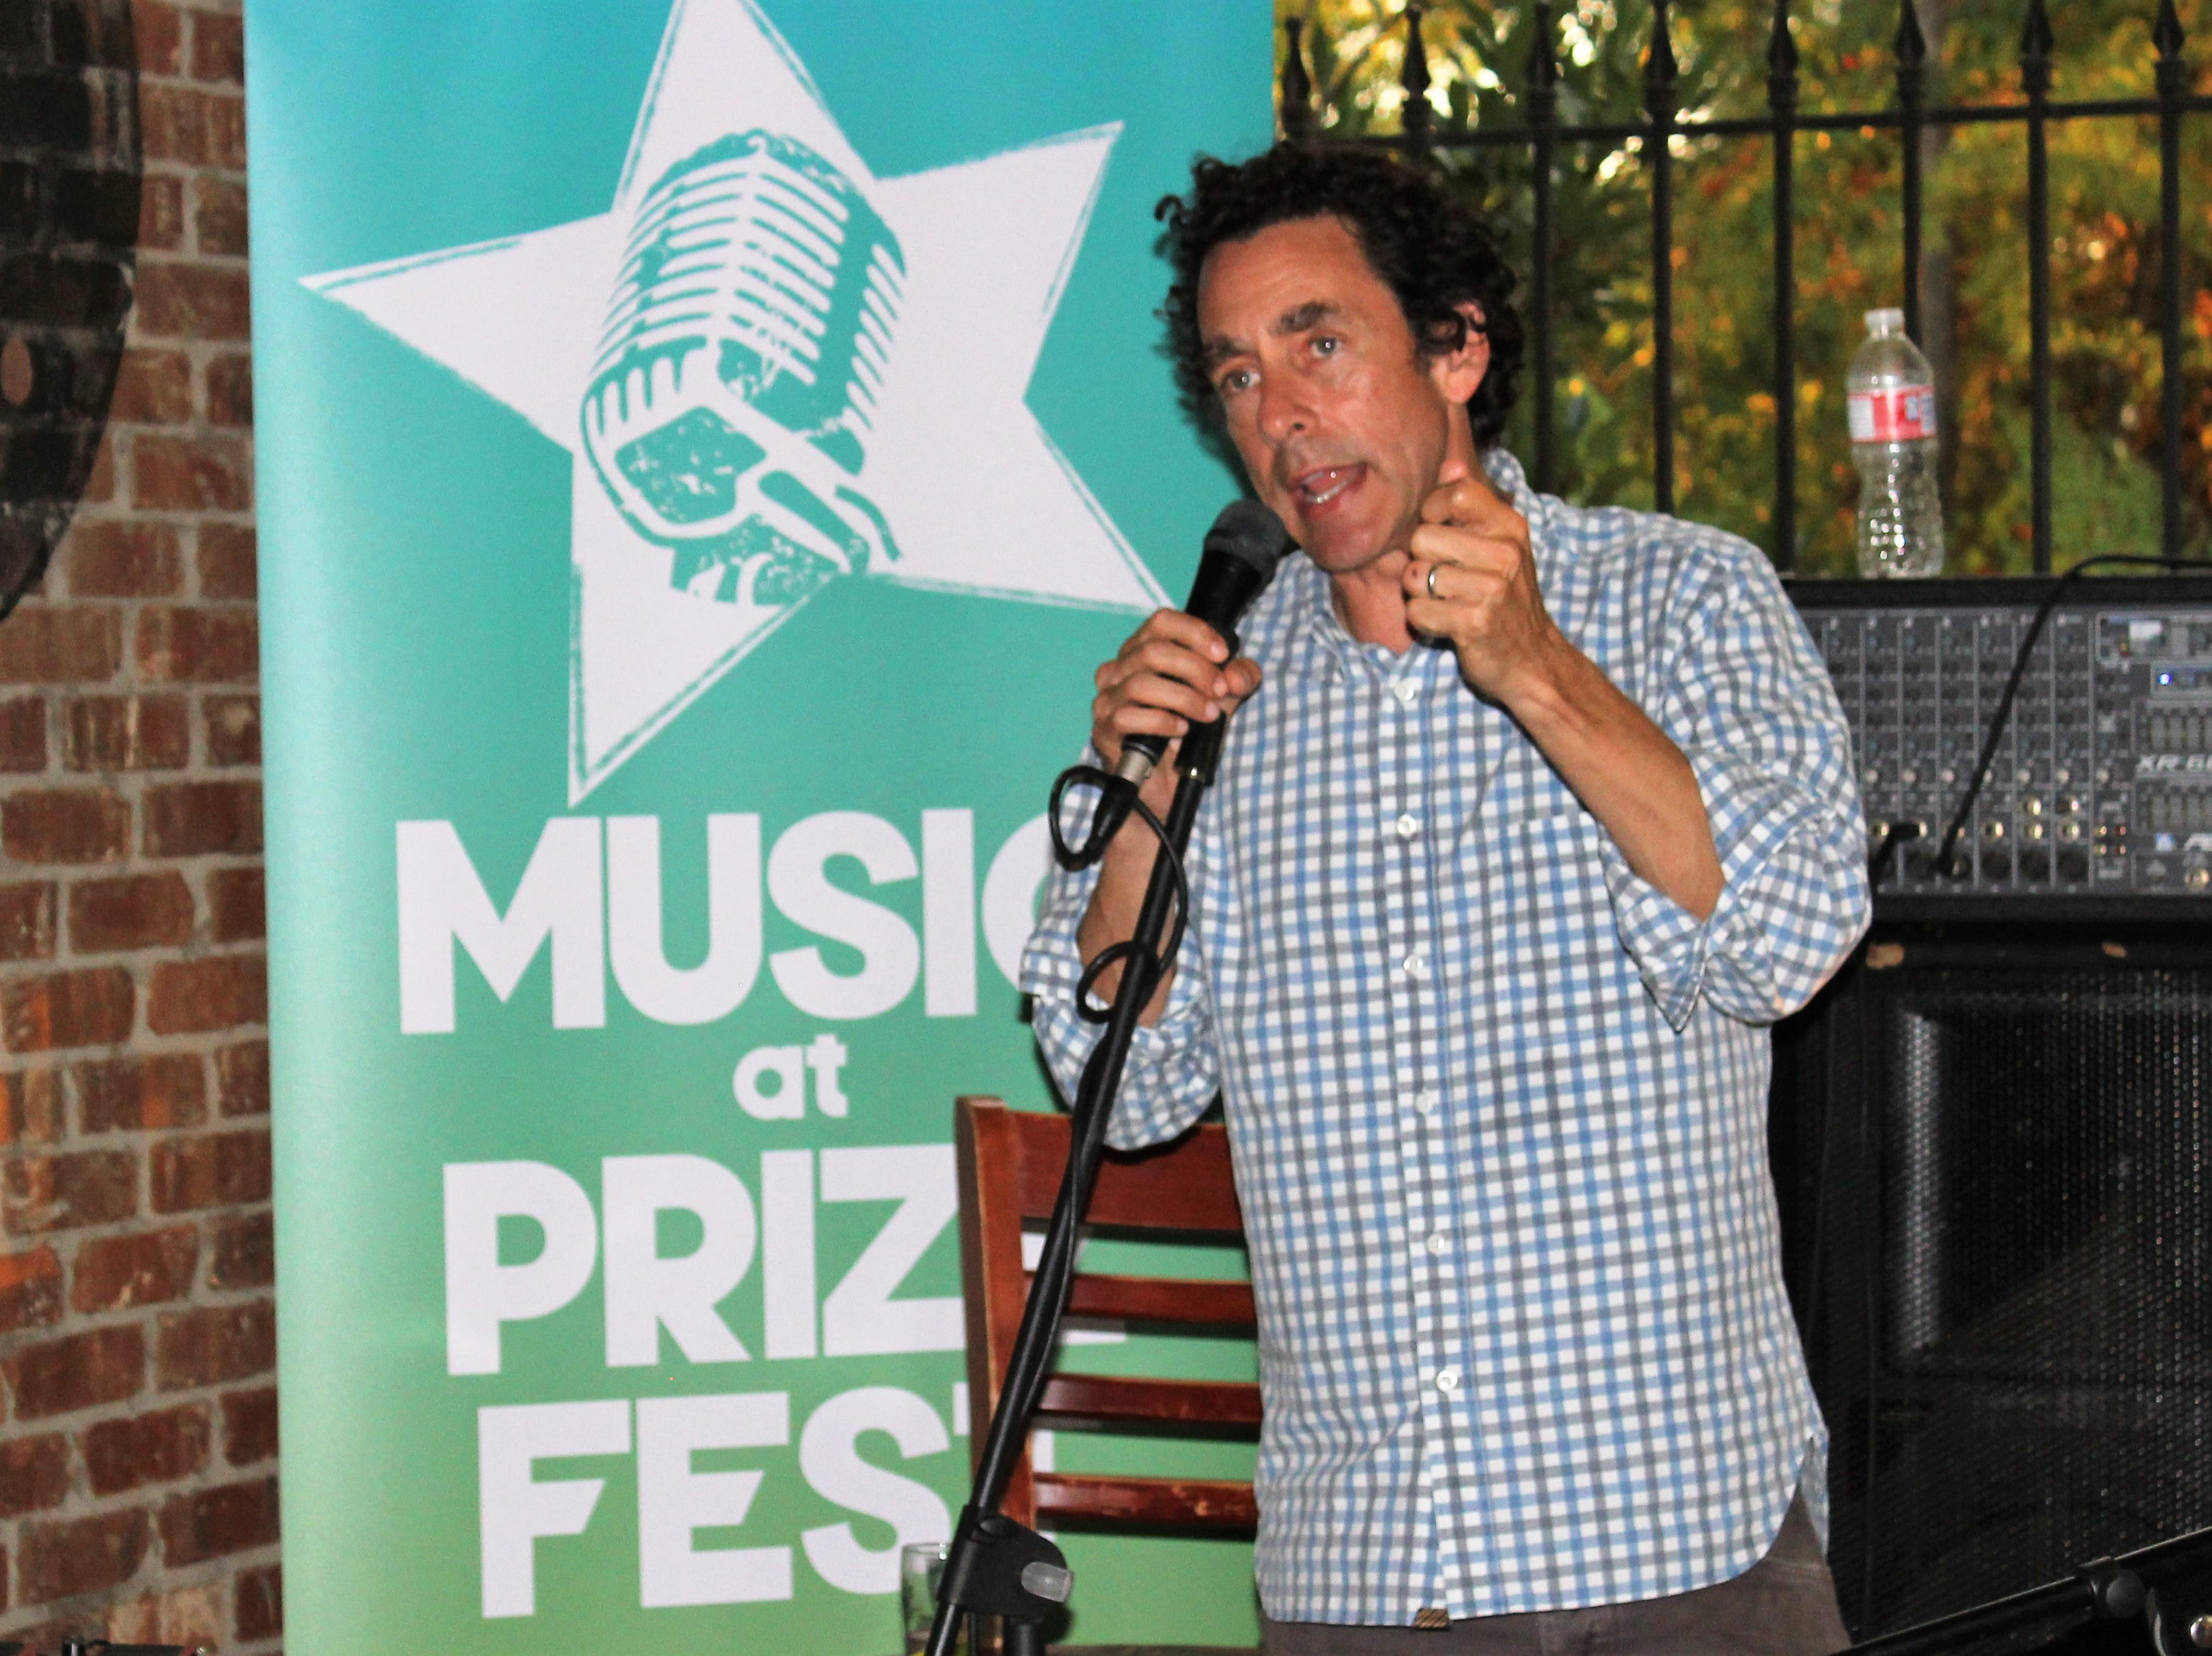 Gregory Kallenberg welcomes the crowd at Louisiana Music Prize Top 5 Announcement Party at Twisted Root Burger Co. in Shreveport.